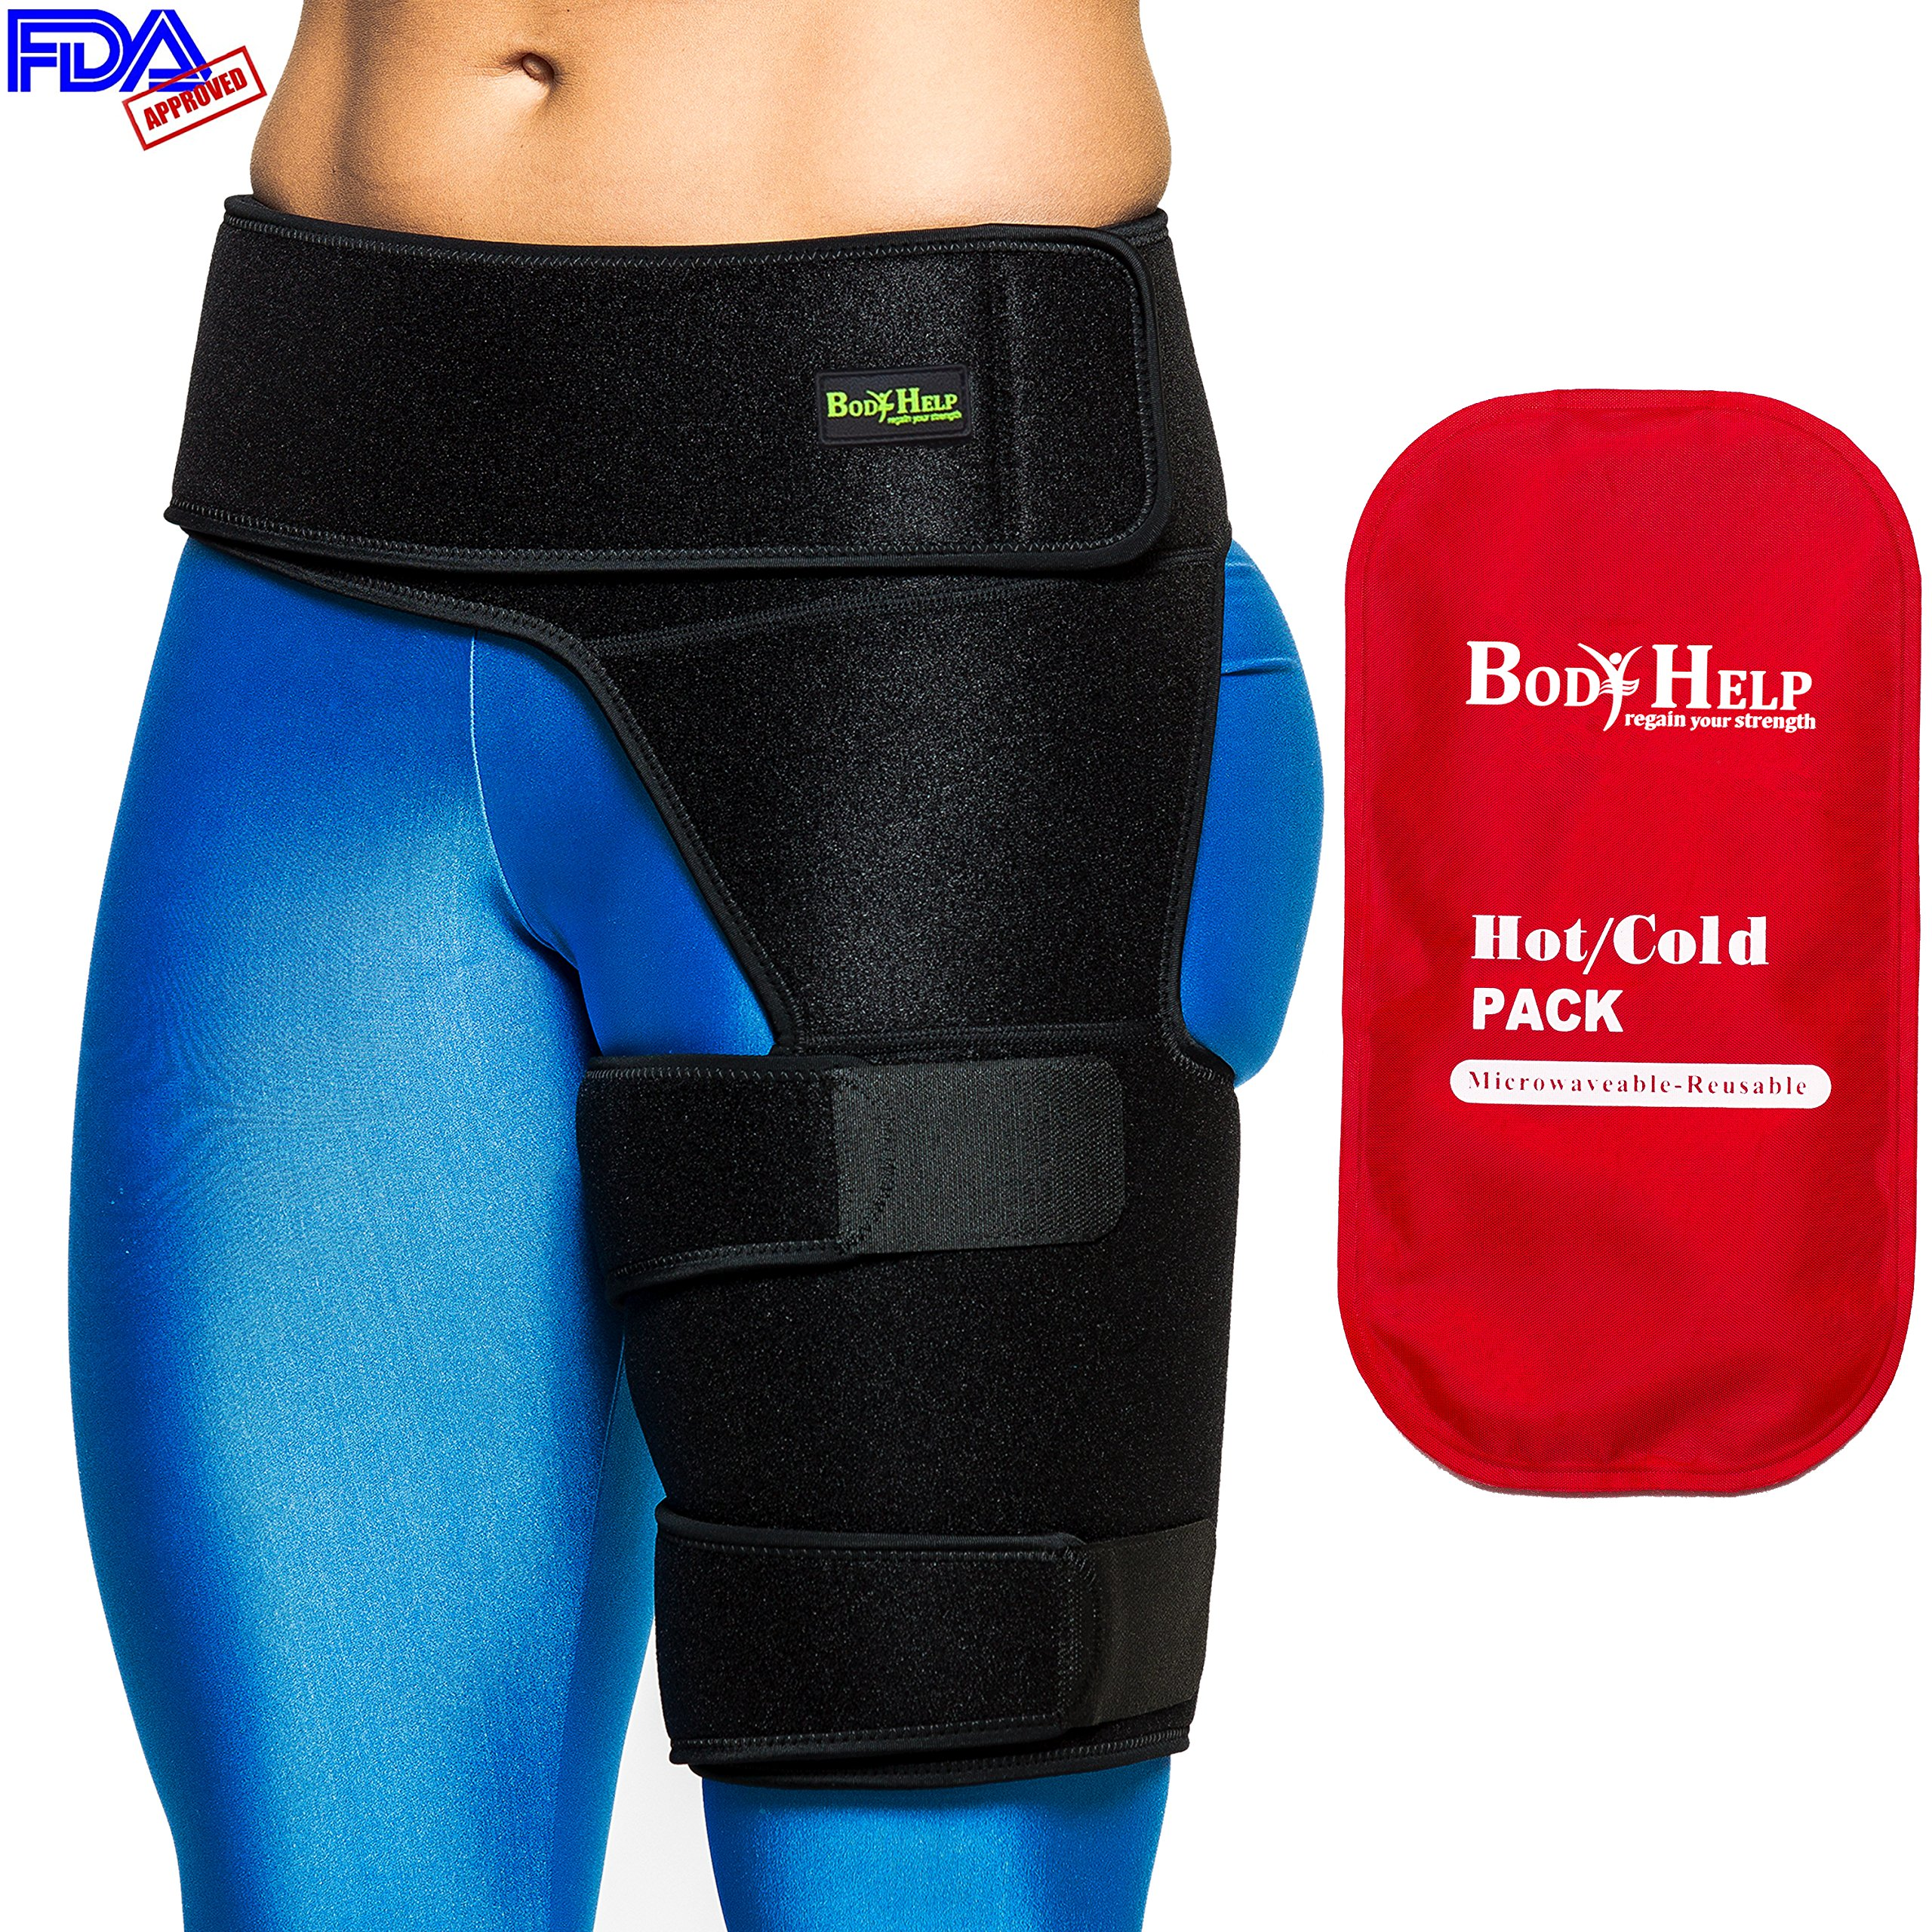 Body Help Hip Brace Support + Red Hot Cold Reusable Pack for Immediate Pain Relief - Best Thigh Belt for Men Women Groin Compression Sleeve Wrap Hamstring Strap for Strain Nerve Sciatic